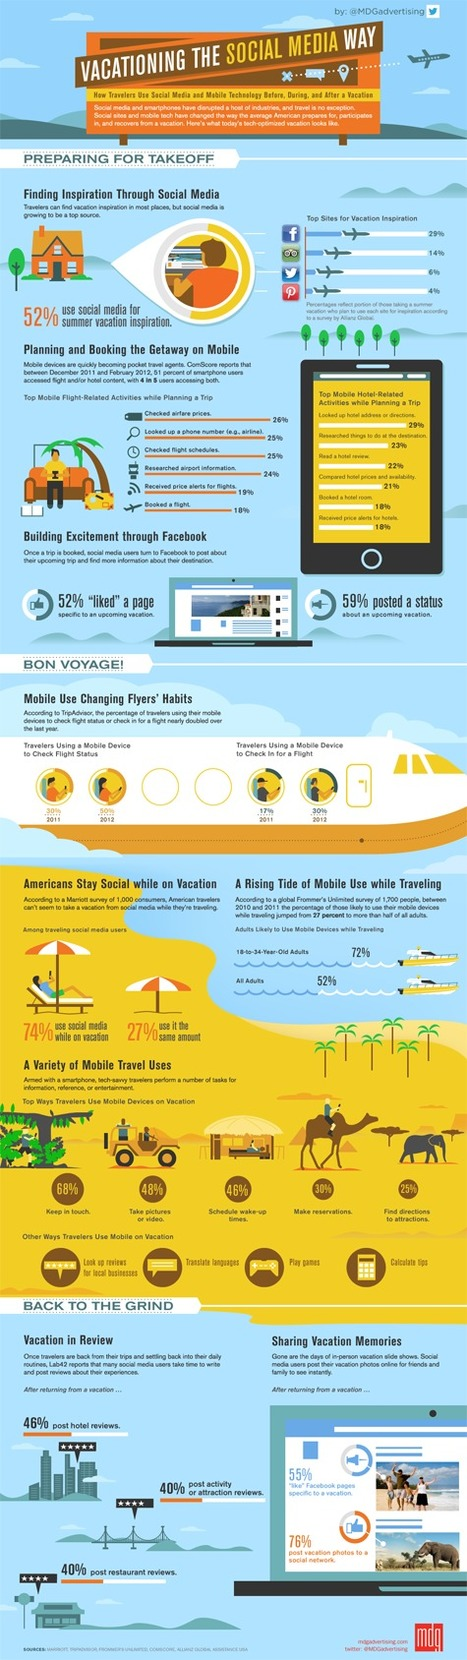 [Infographic] Going on Vacation the Social Media Way | Matkailu verkossa | Scoop.it